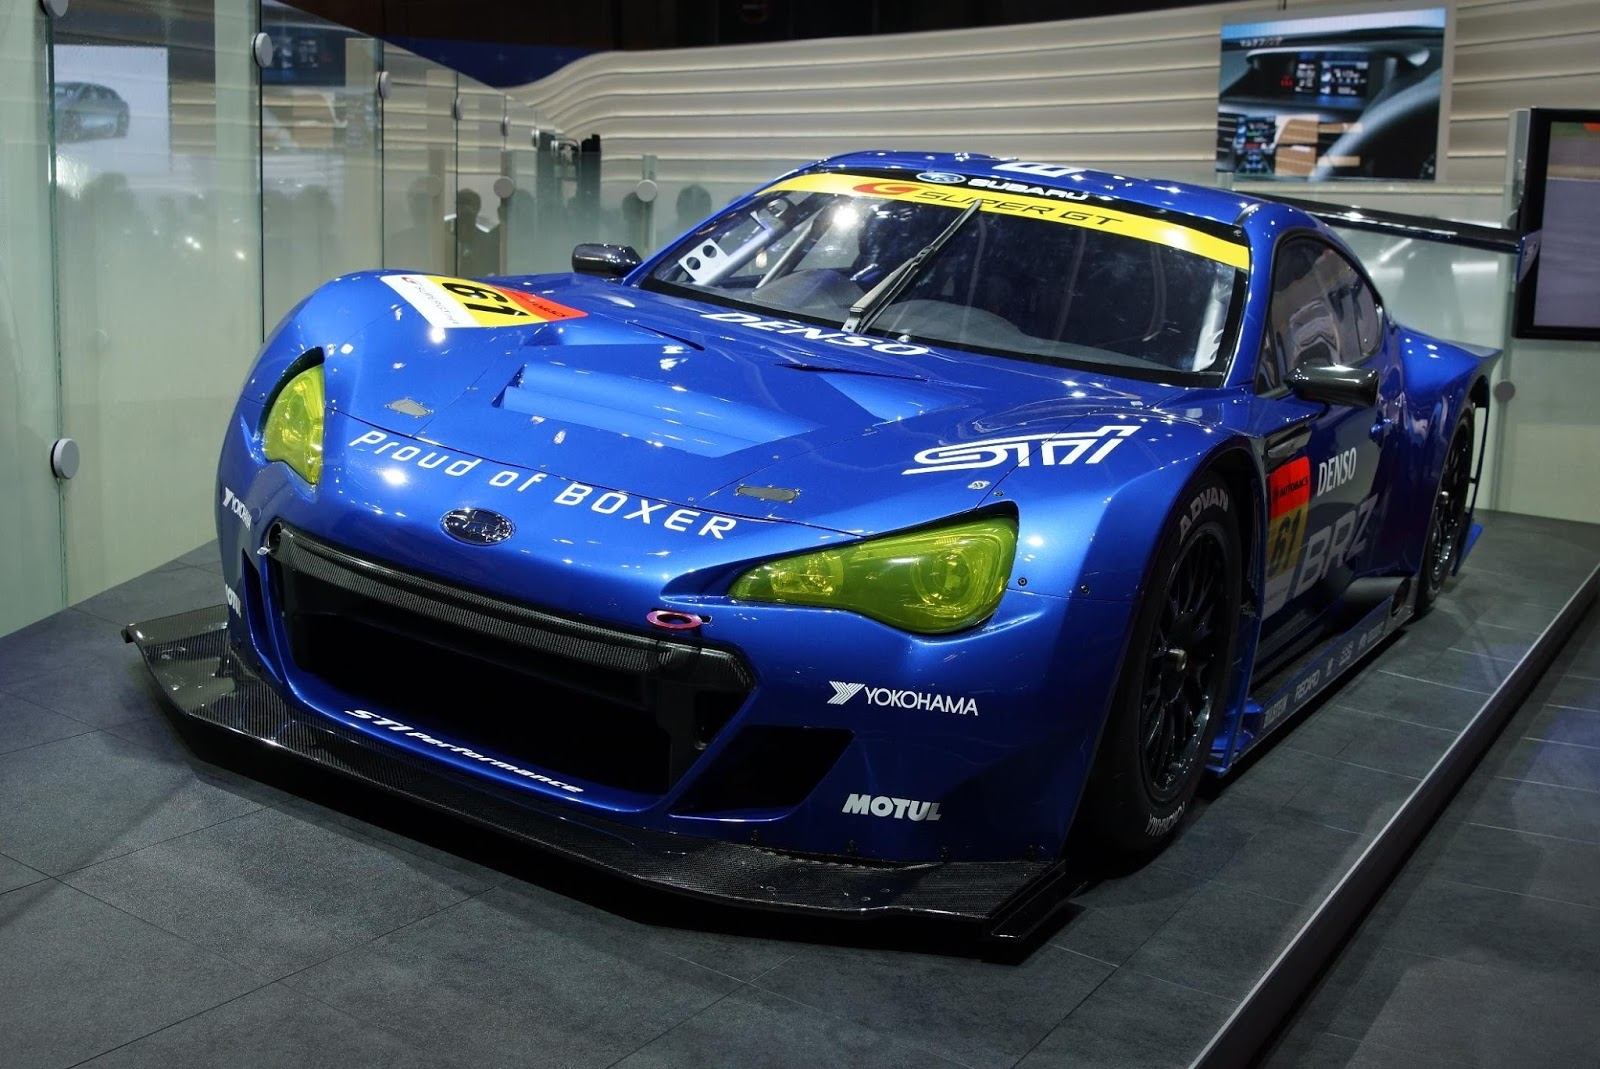 2015 Subaru BRZ Turbo High Resolution - Cars Bikes Overviews